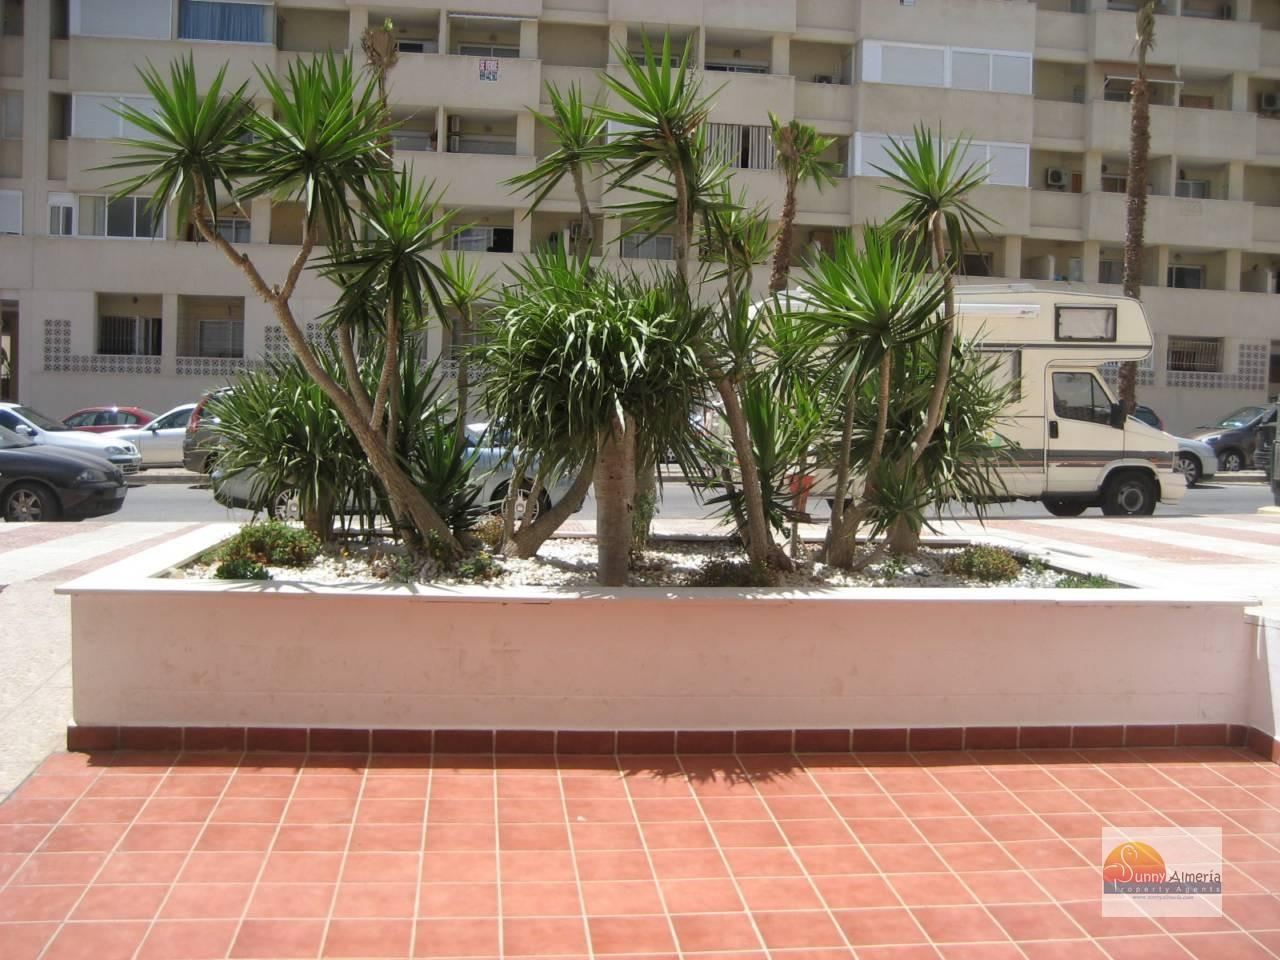 Apartment for sale in av rosita ferrer 4 (Roquetas de Mar), 115.000 €